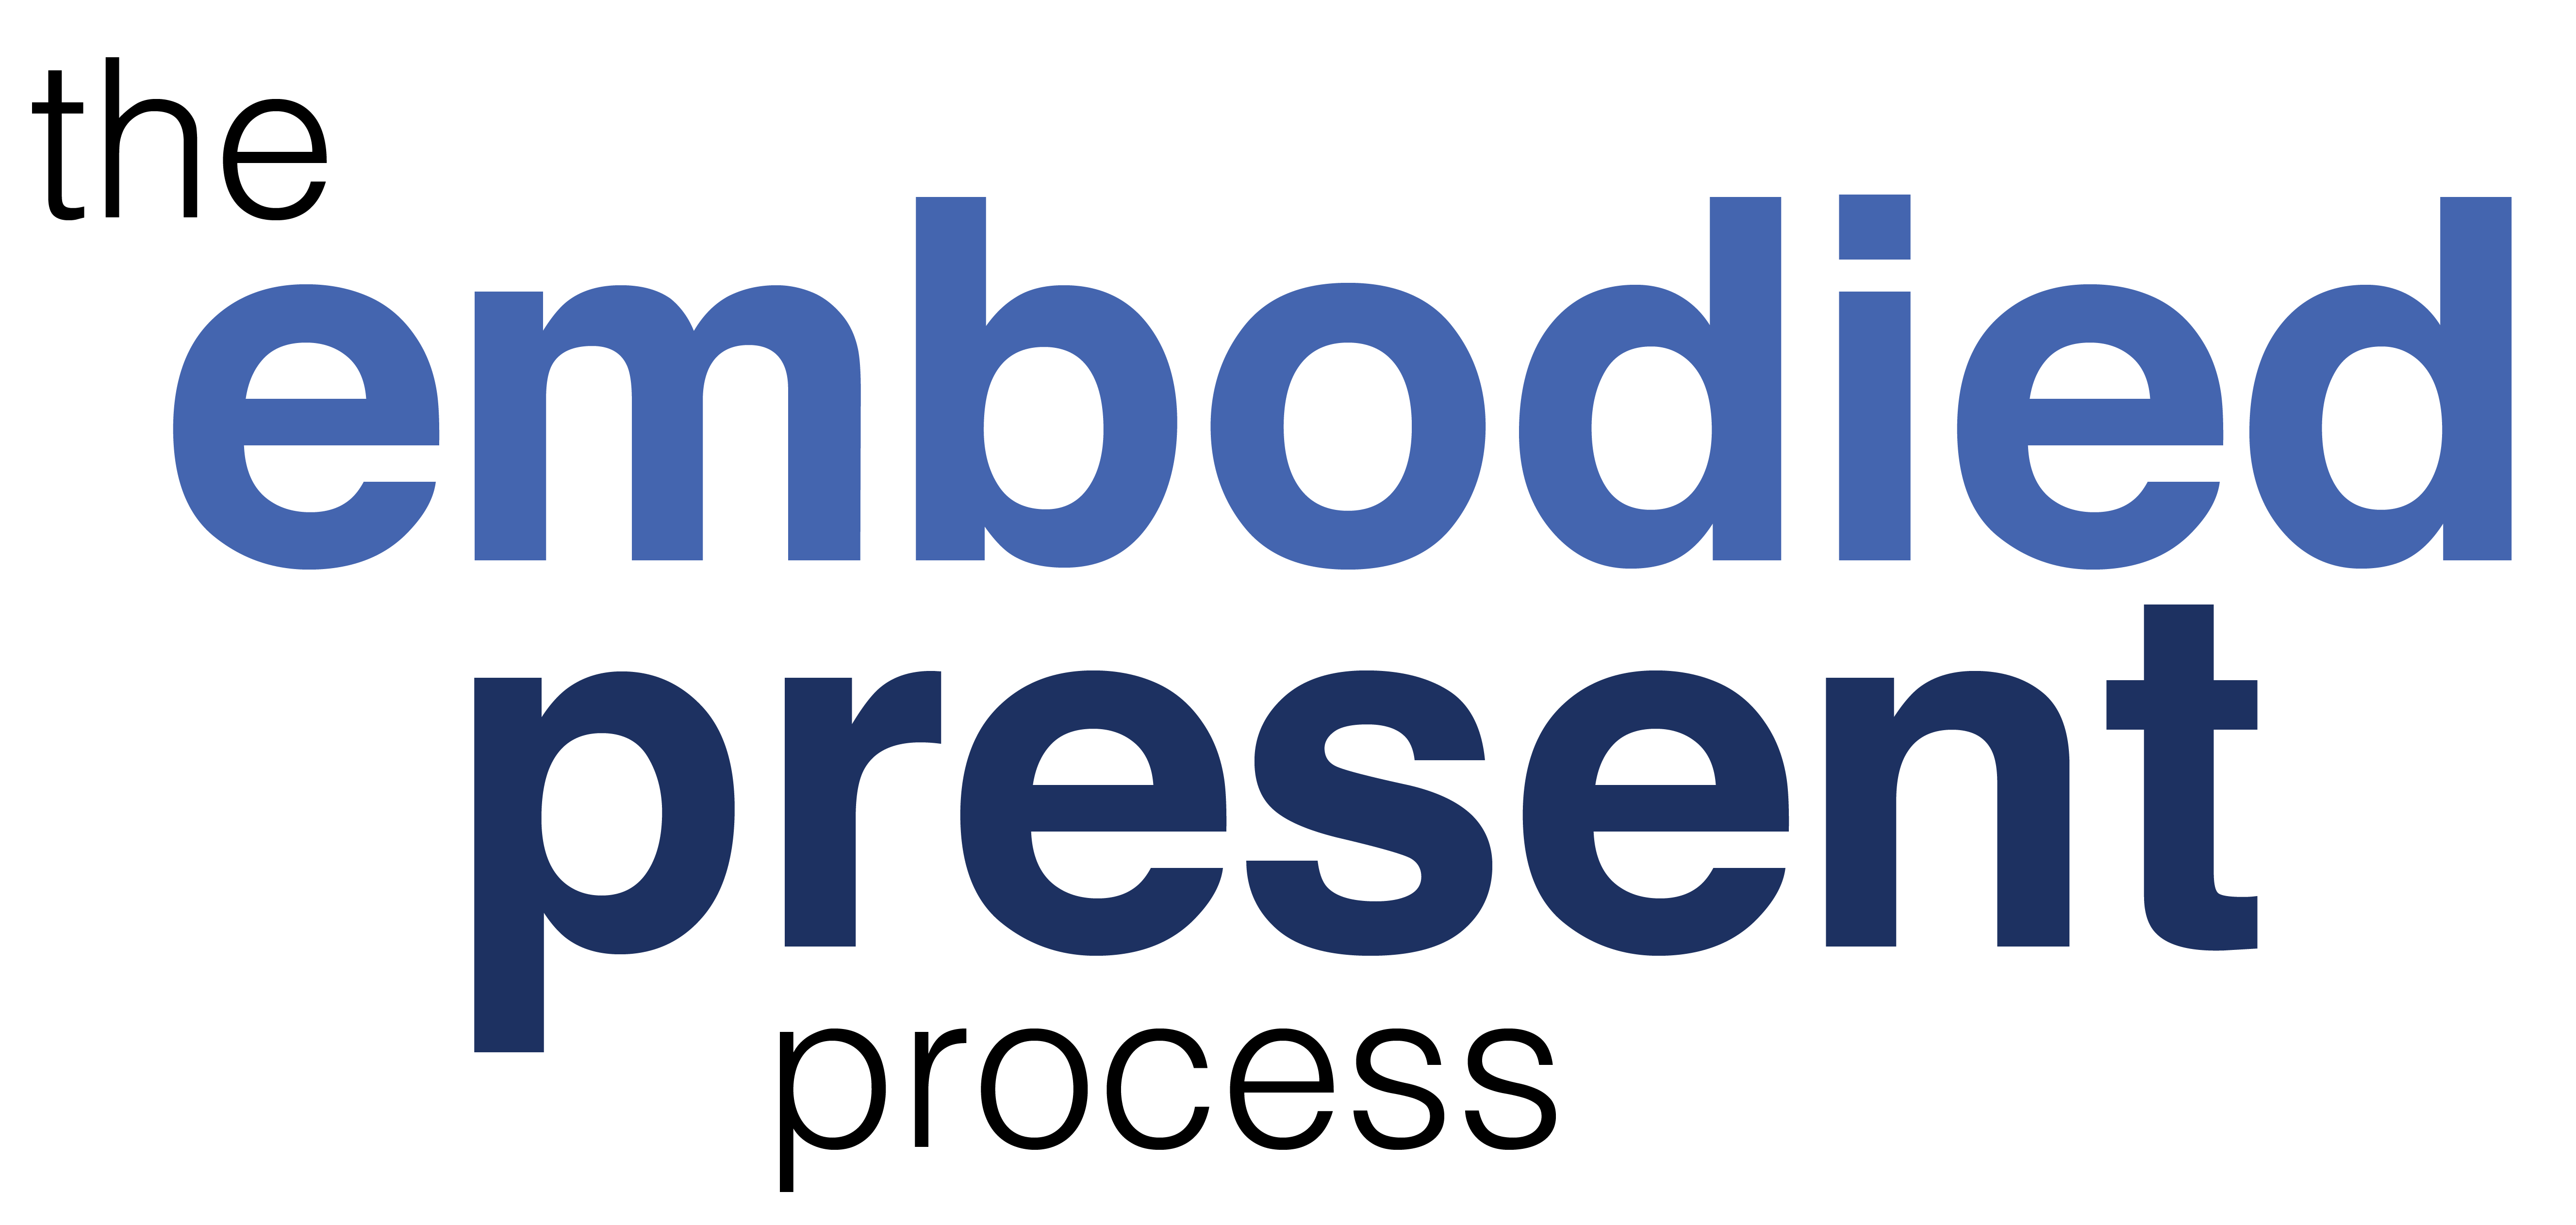 The Embodied Present Process logo